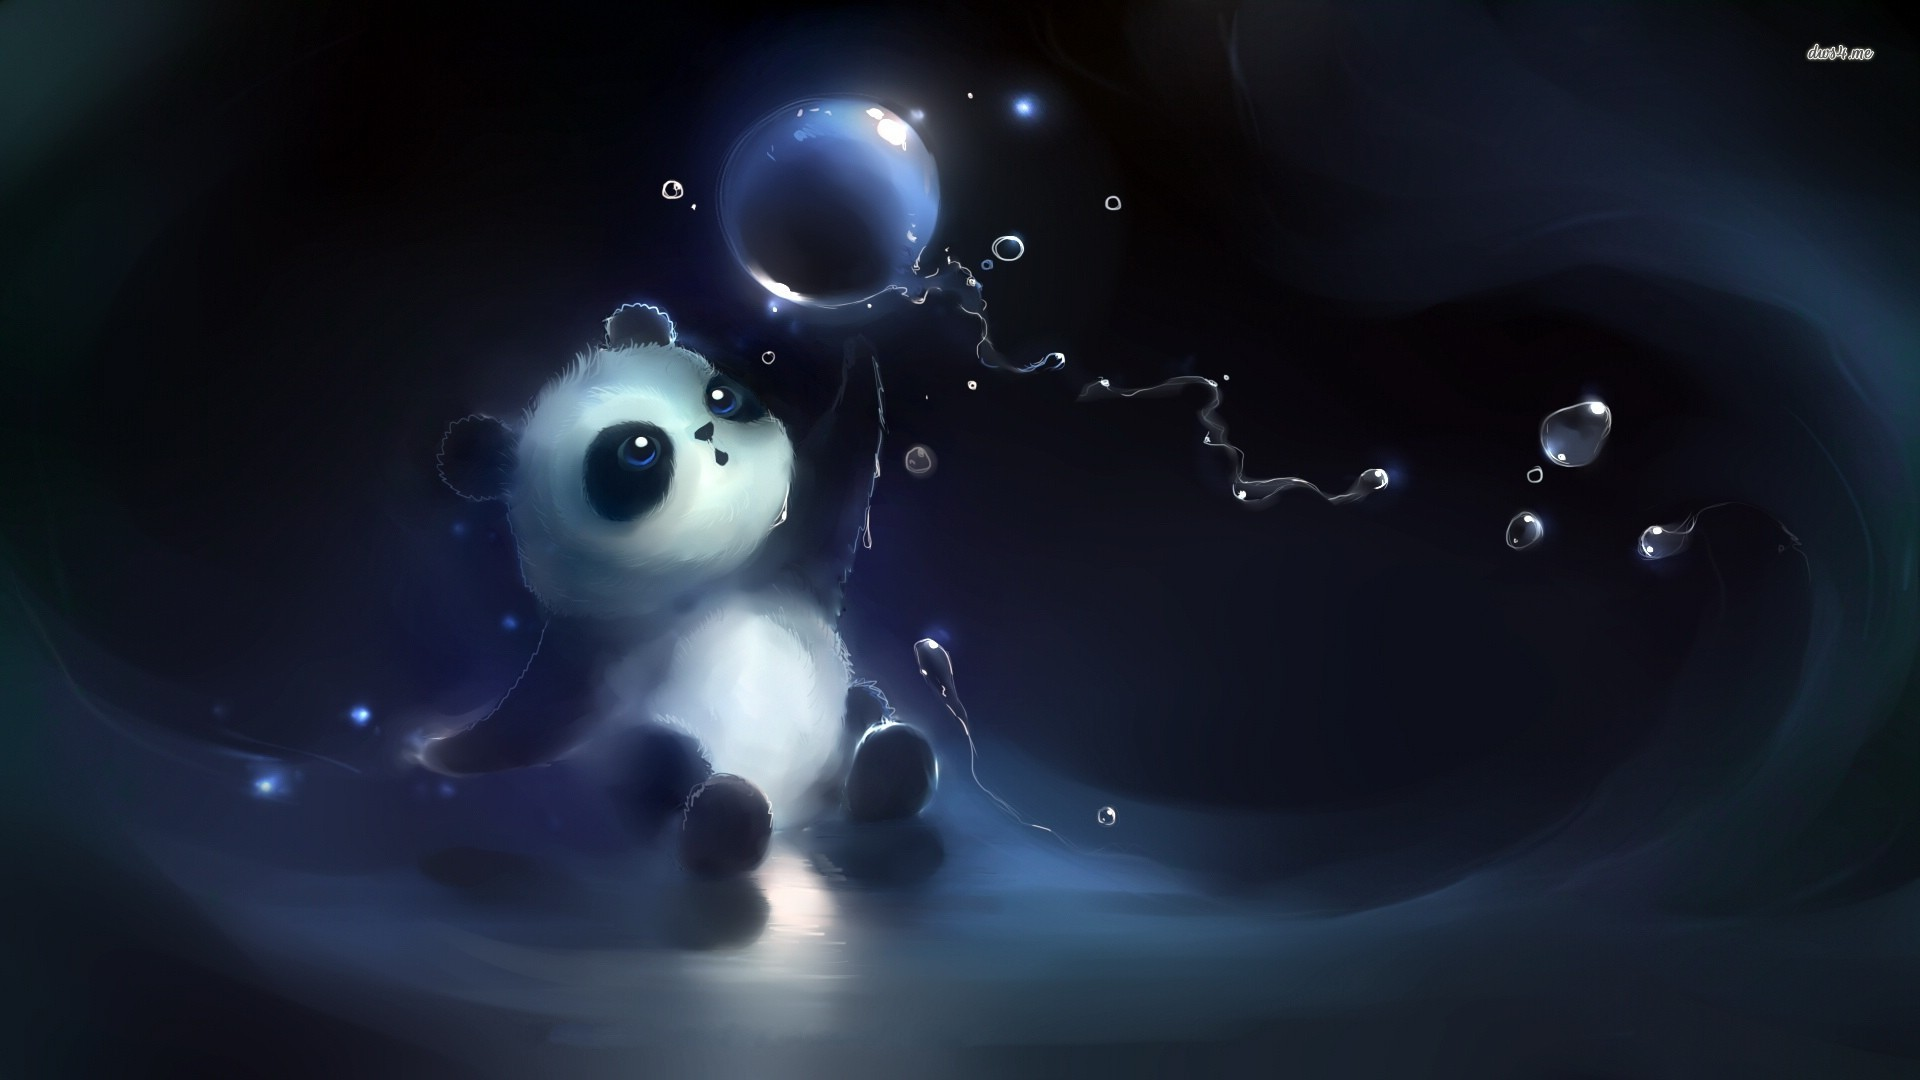 Cute Panda Playing With Bubbles Artistic Wallpaper #129781 - Resolution 1920x1080 px